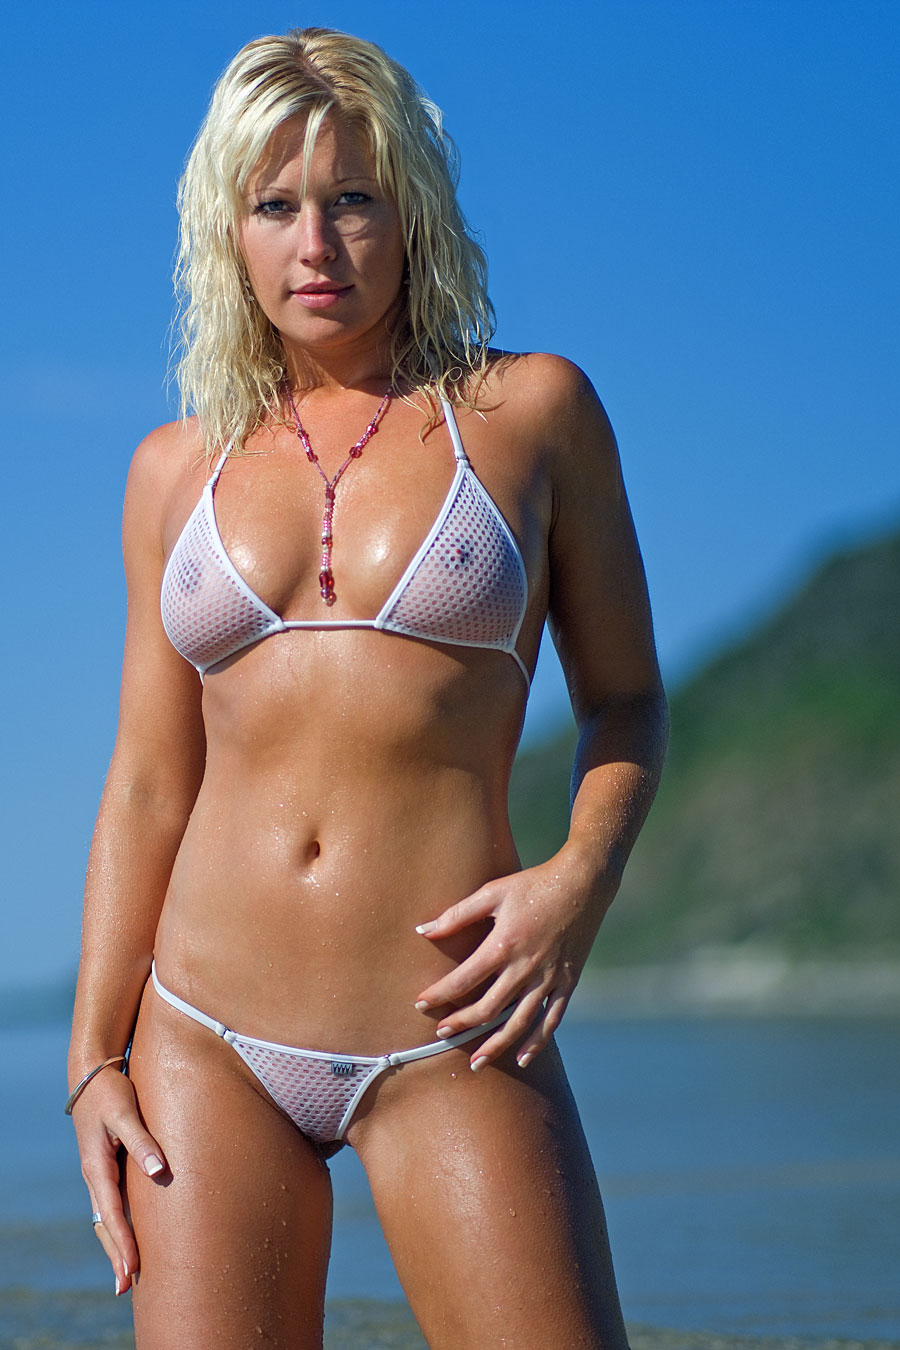 girl's who wear wicked weasel